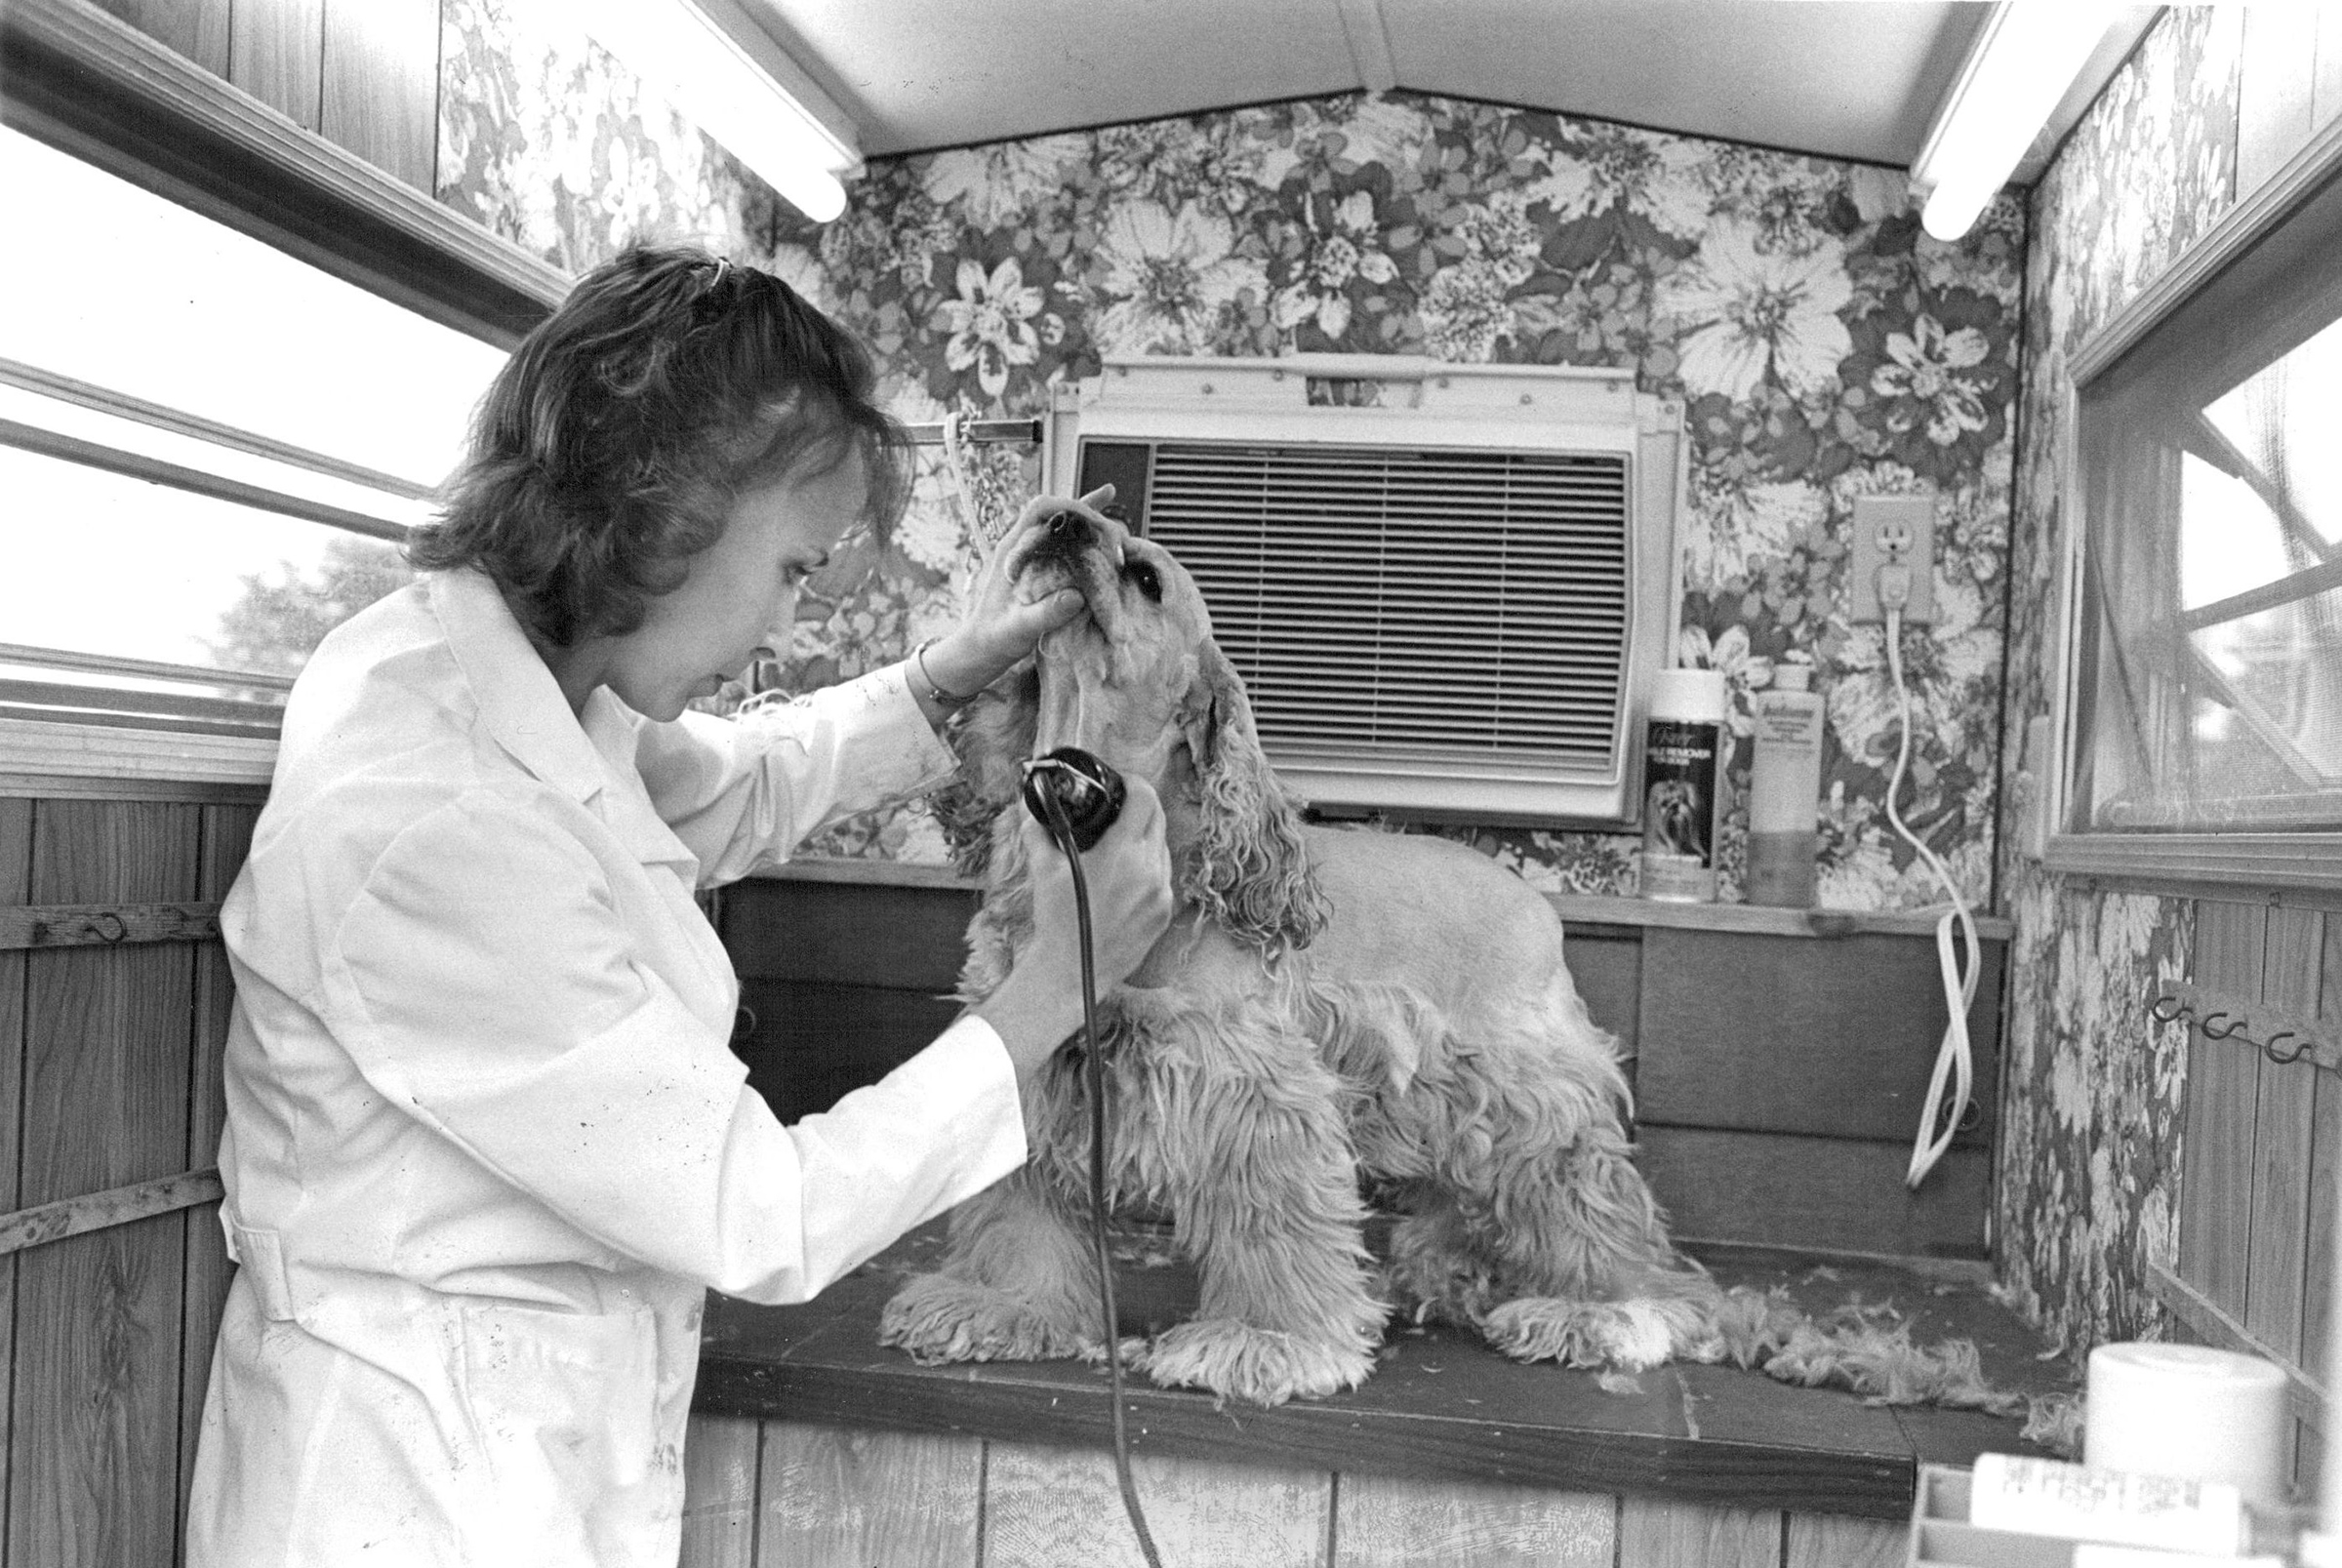 Angela Eaton grooms  Dutchess  inside  House Calls  trailer in 1982. The unit is equipped with a bath, heater, air conditioner and dryer.